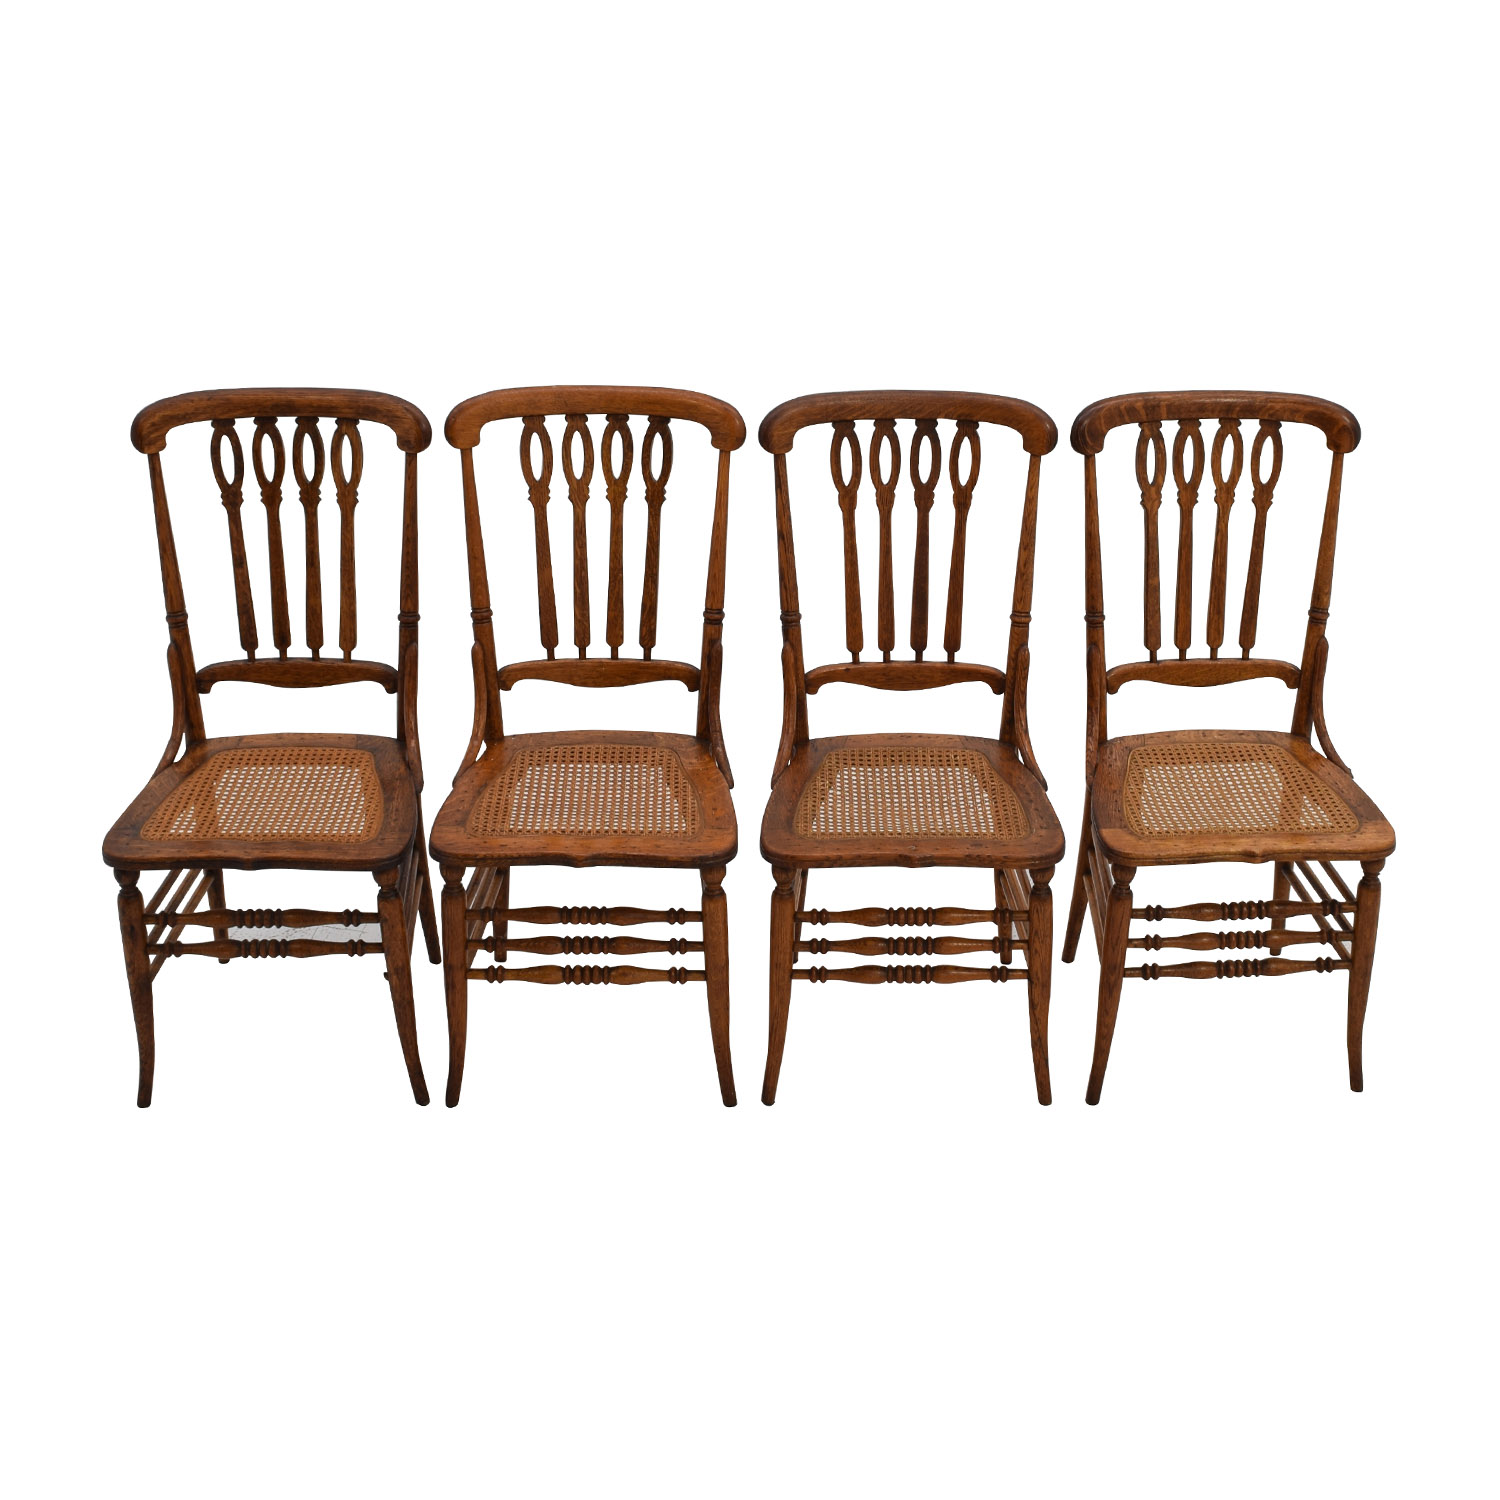 wood chairs for sale white styling chair dining used